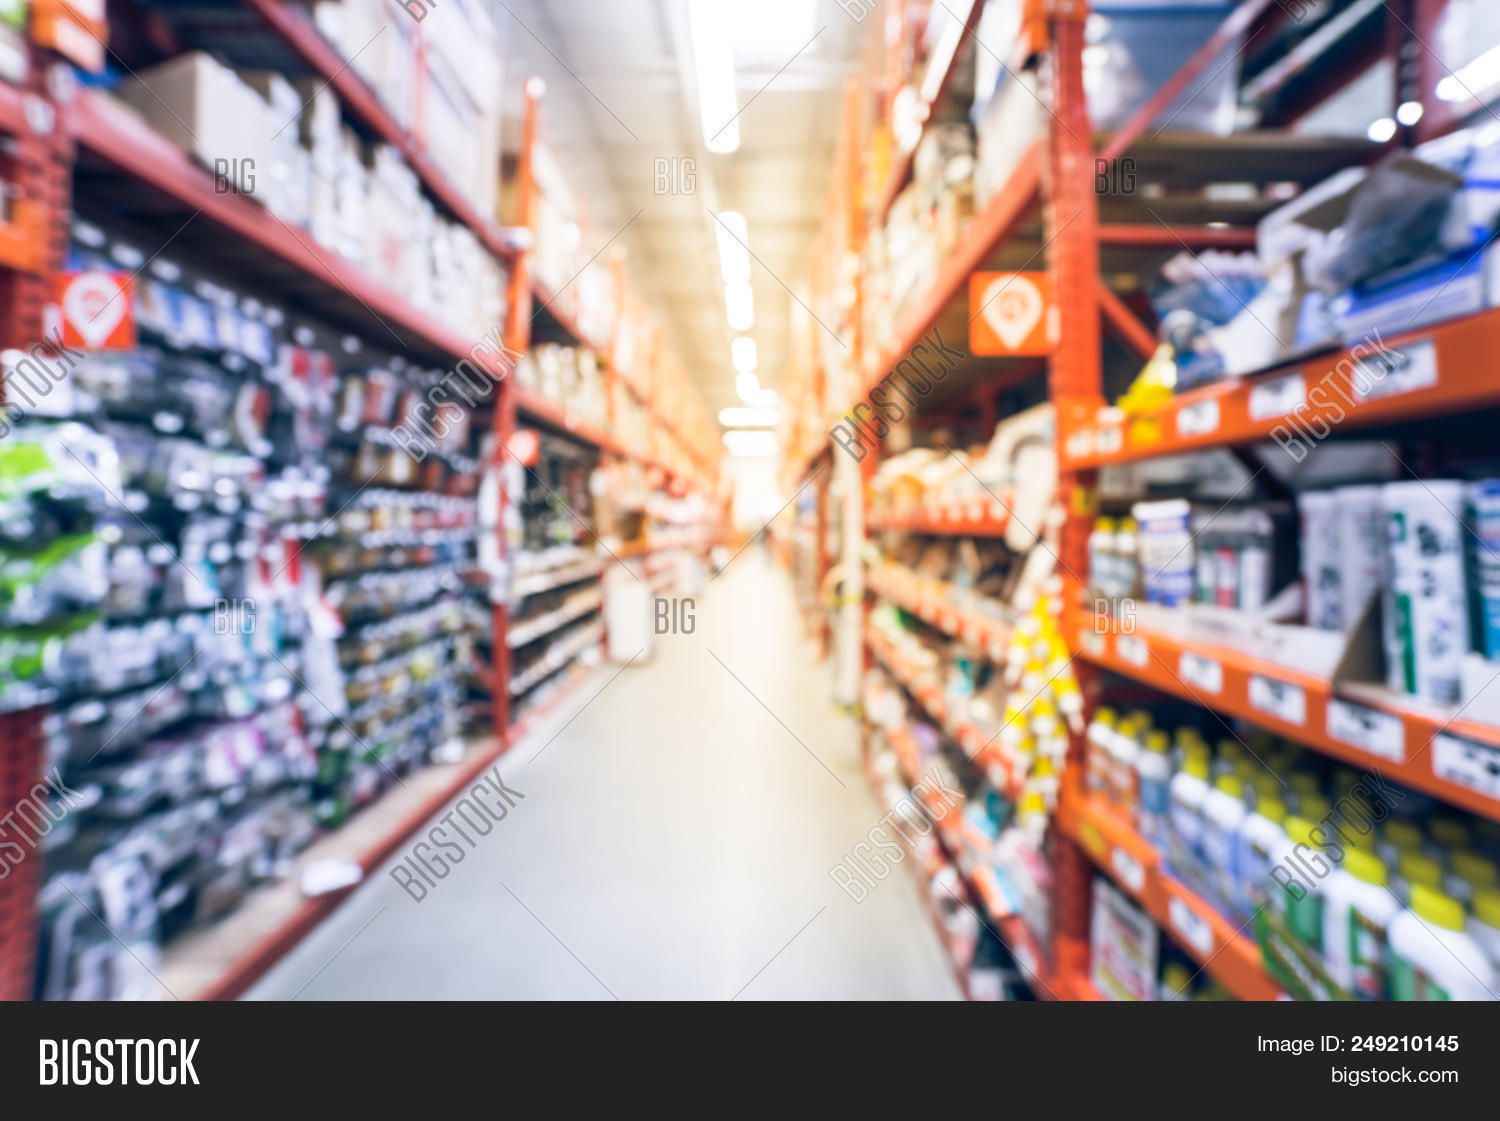 Abstract Blurred Door Hardware, Weather Proofing, Lockset At Hardware Store